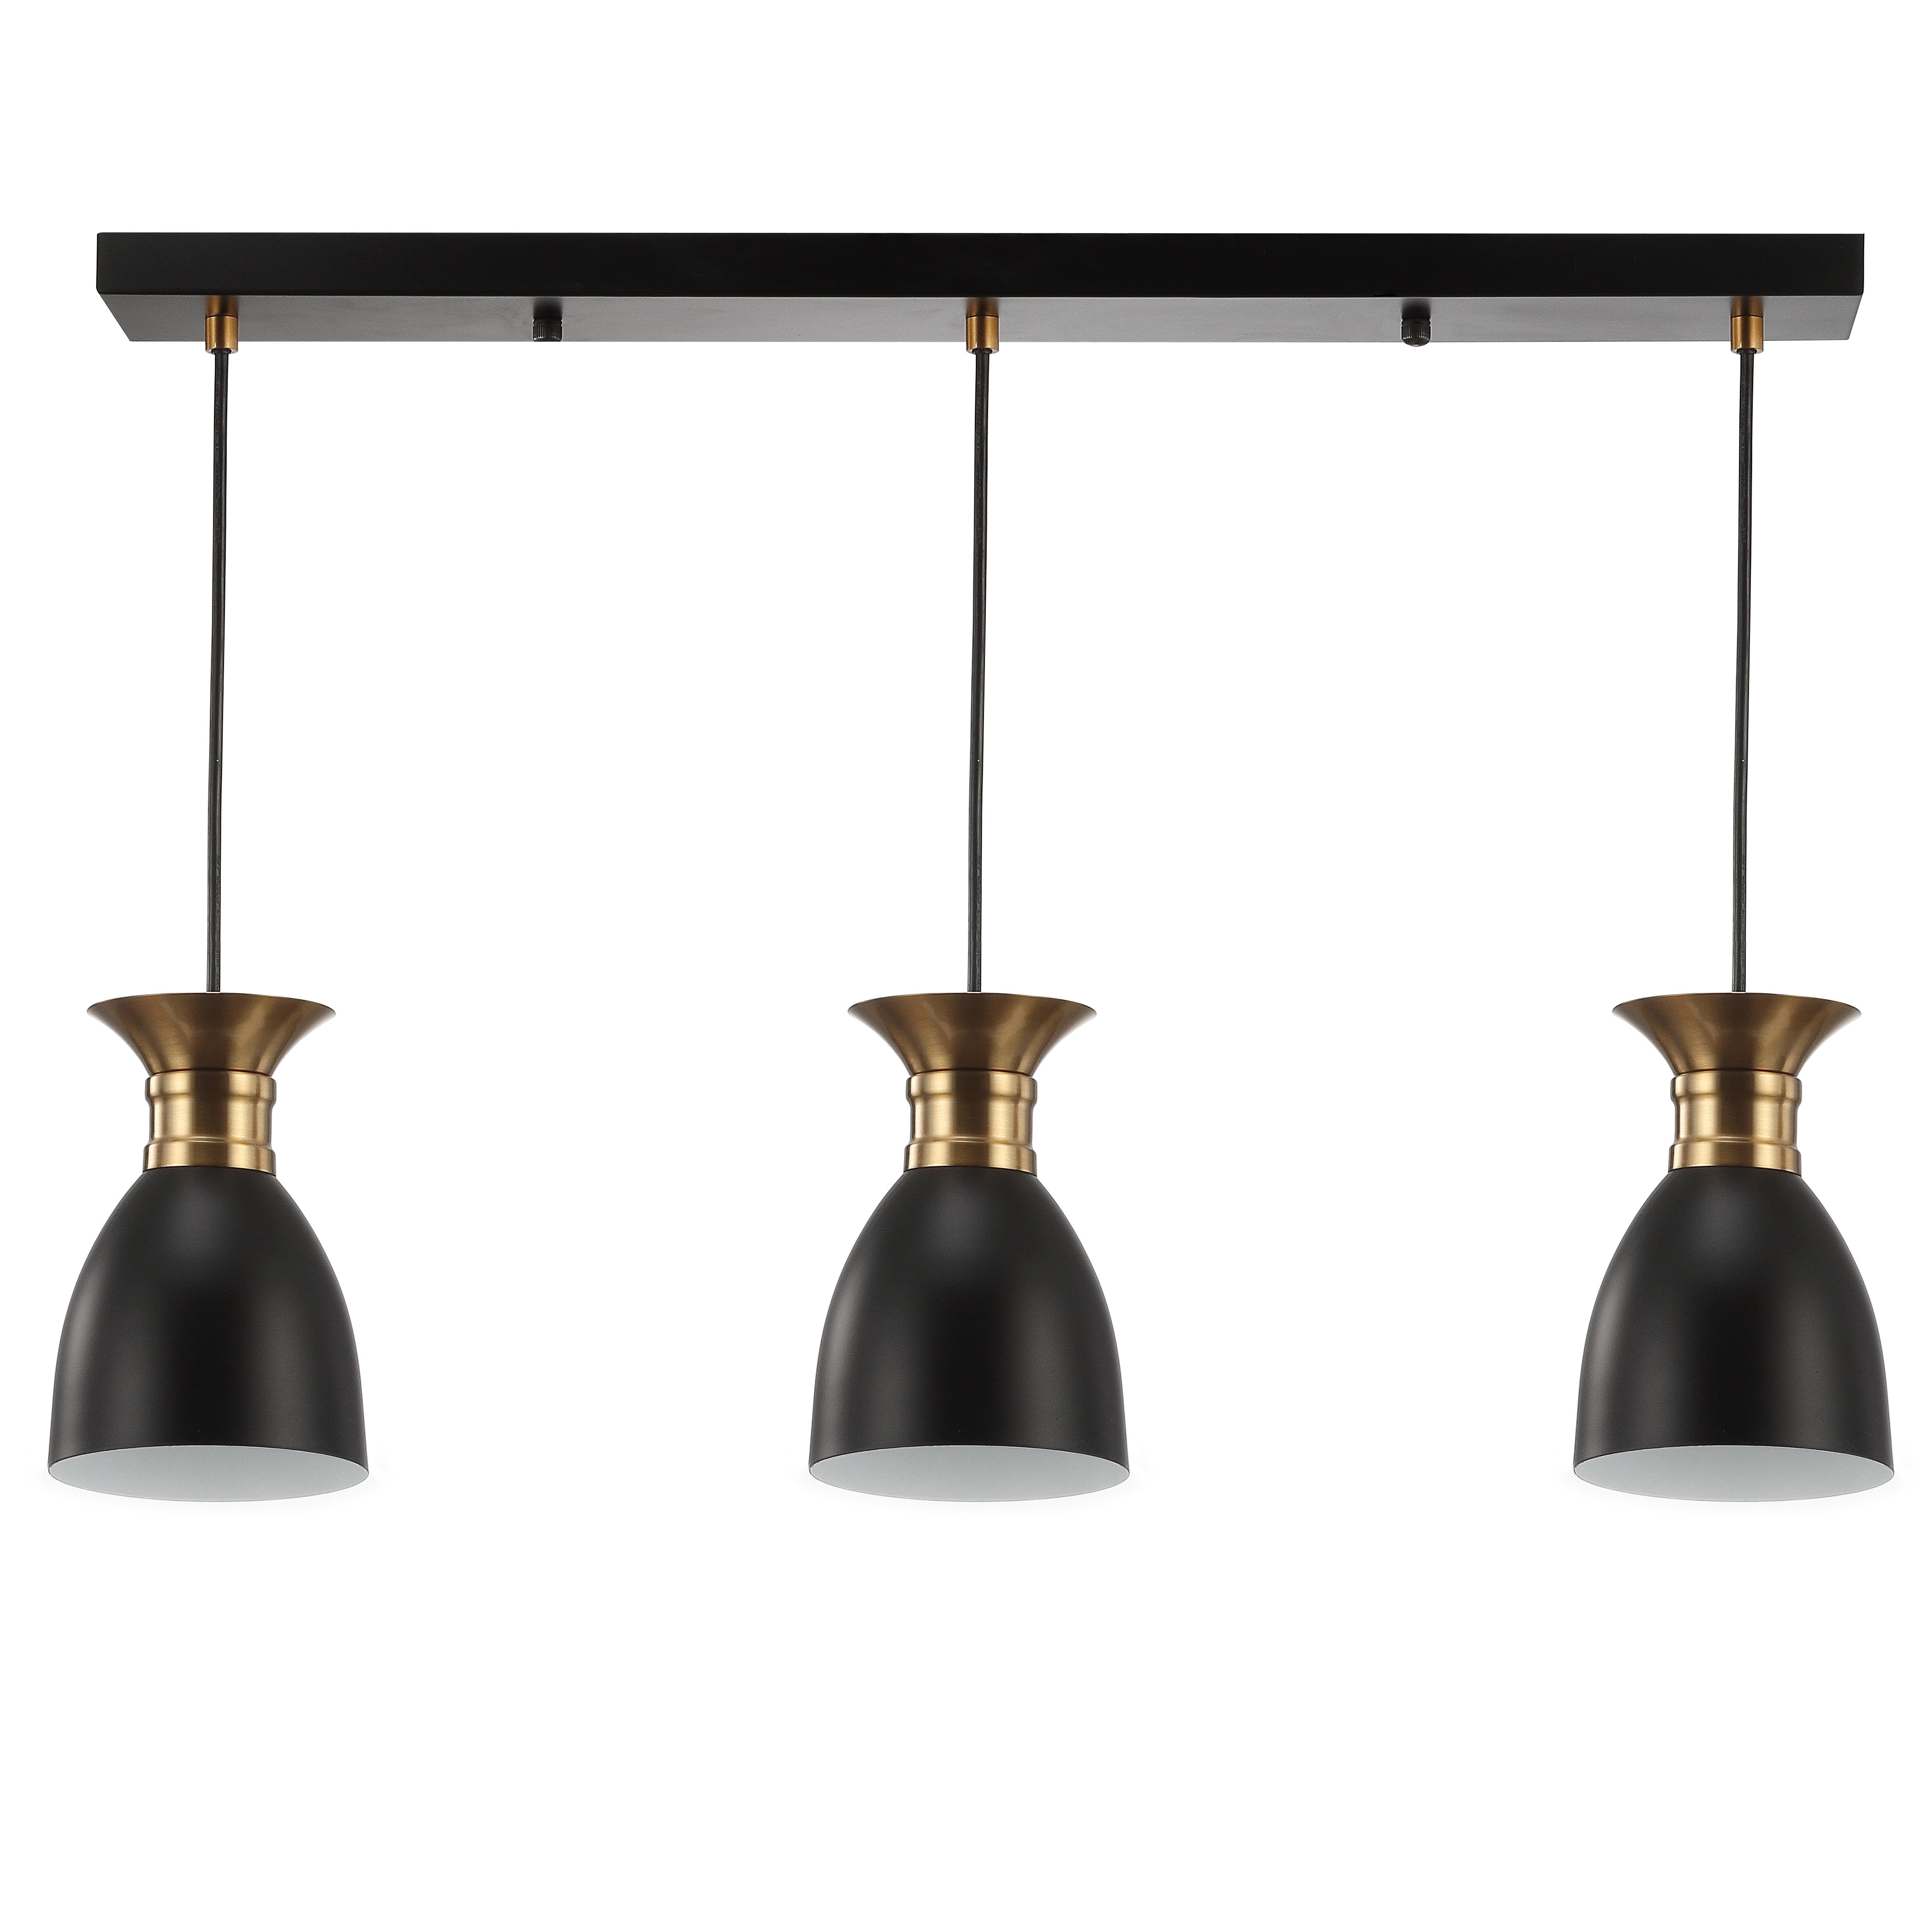 Bullington 3-Light Kitchen Island Pendant with regard to Newest Schutt 4-Light Kitchen Island Pendants